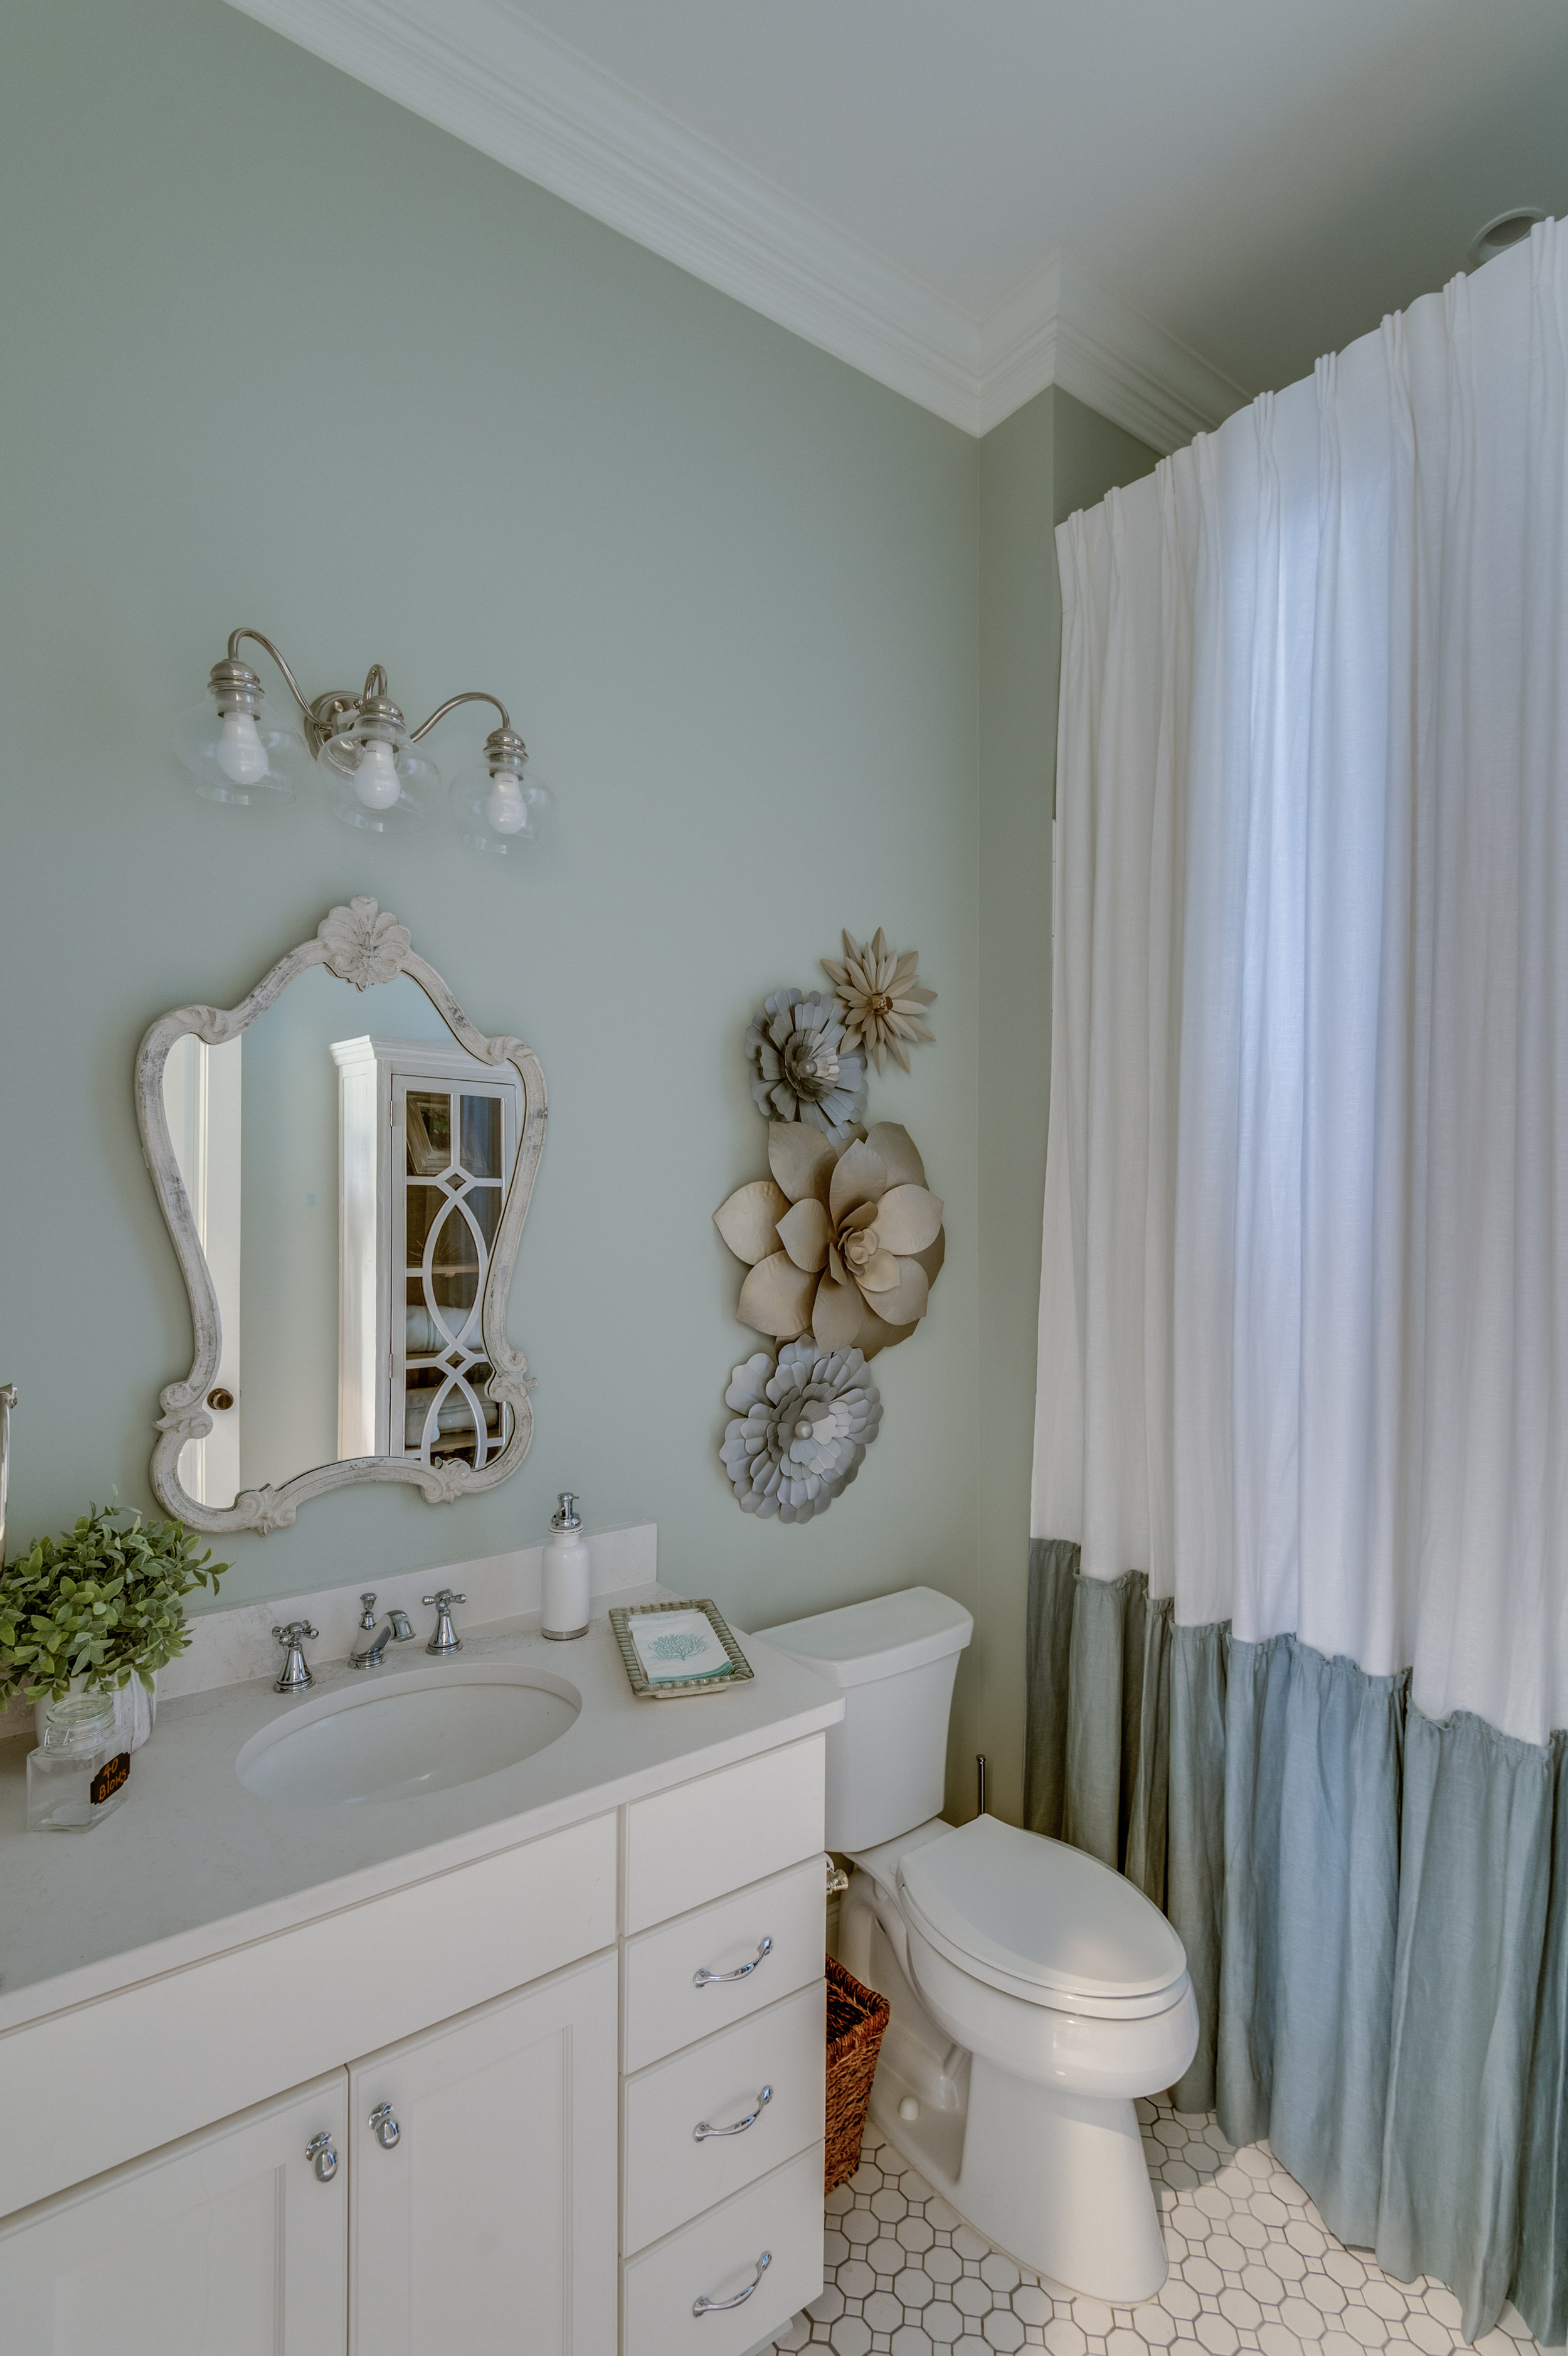 KHB Interiors new orleans metairie garden district river ridge lakeview new orleans interior designer old metairie decorator details custom shower curtain.jpg